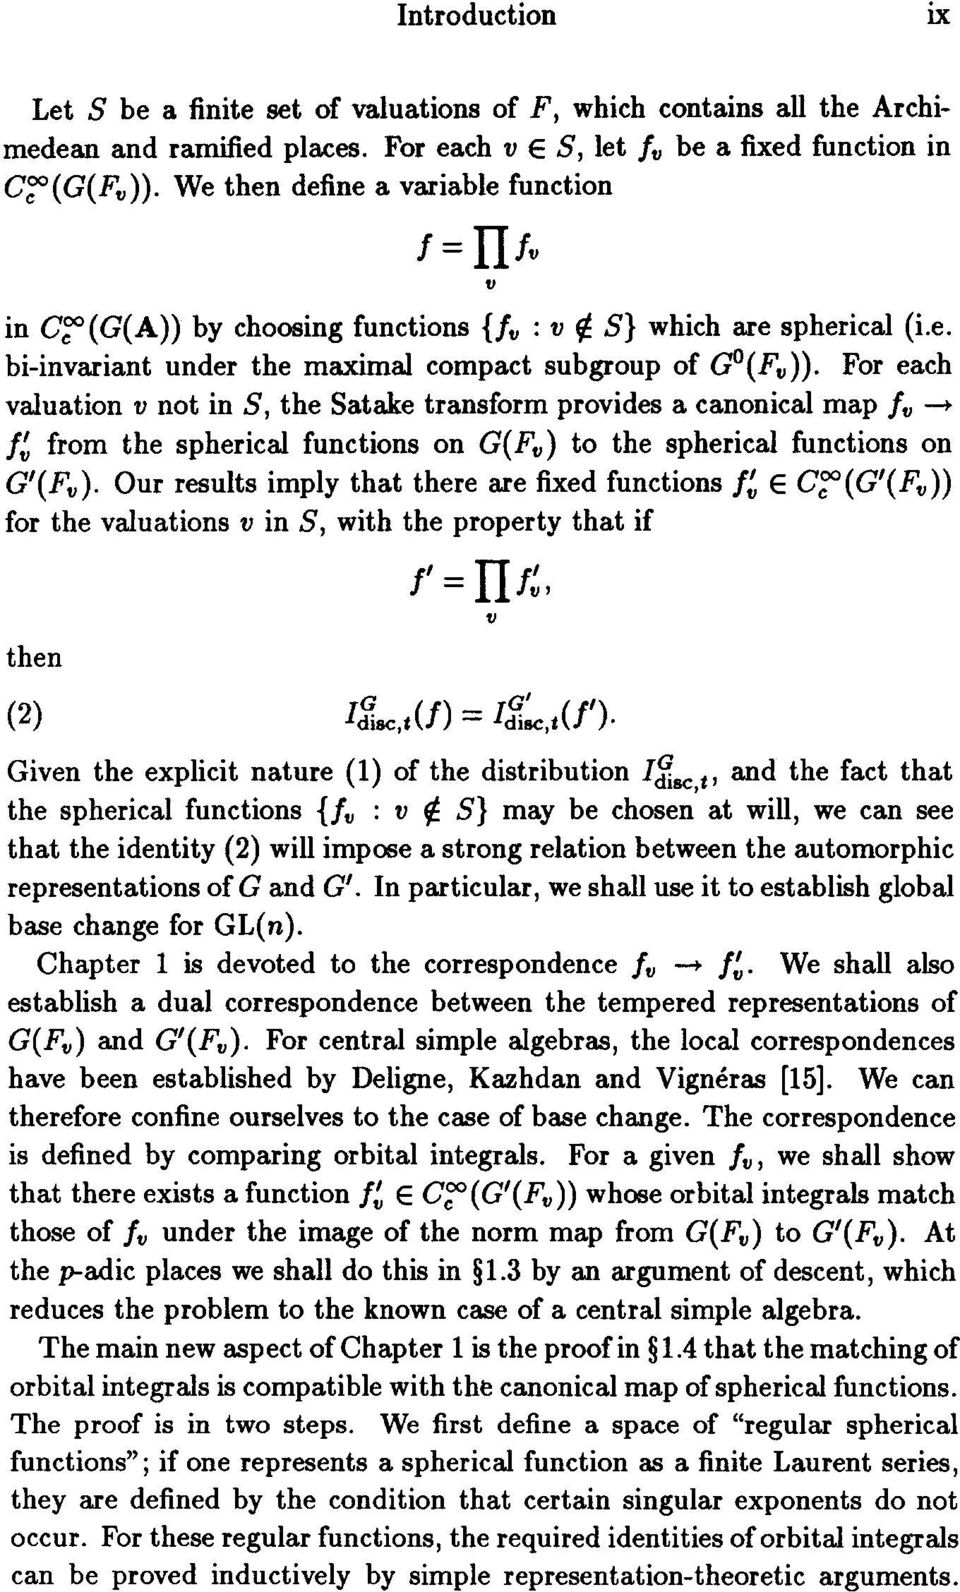 For each valuation v not in S, the Satake transform provides a canonical map fa -- f' from the spherical functions on G(F.) to the spherical functions on G'(F,).